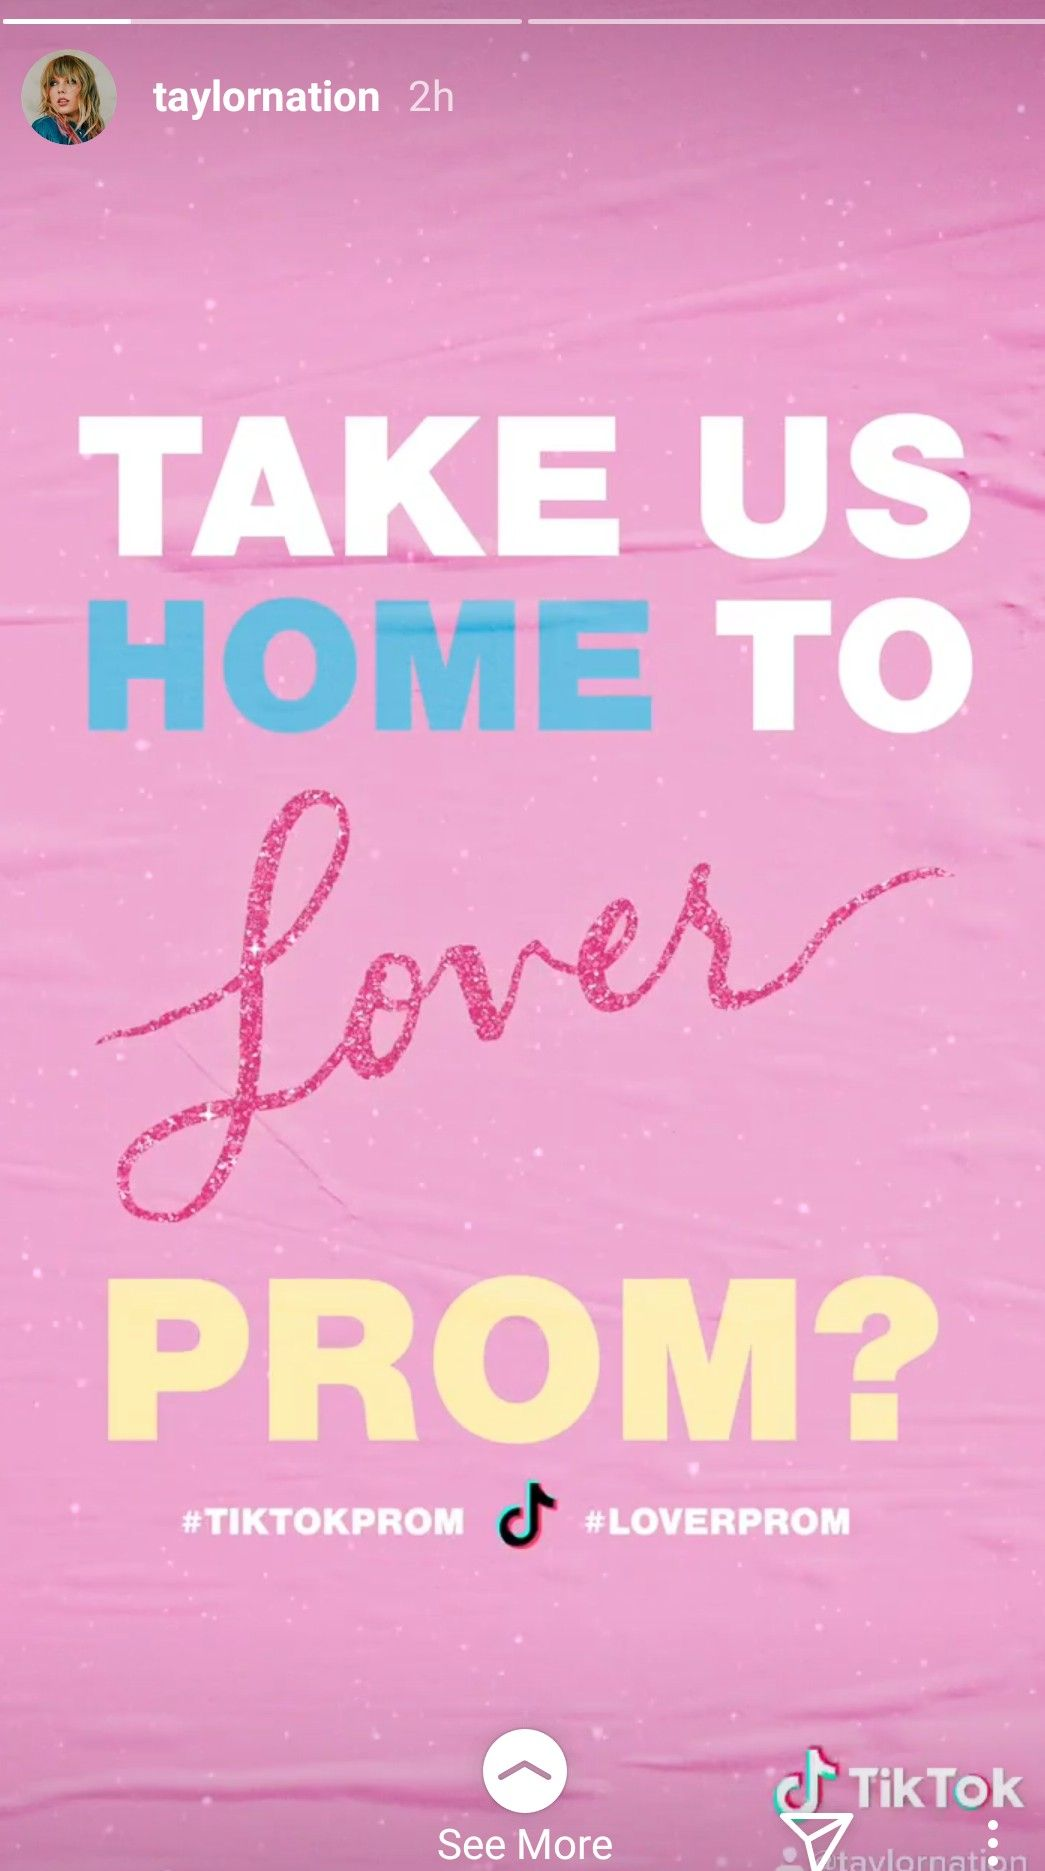 I M Not On Tik Tok We Do Not Prom Here In India Tik Tok Tok Lovers